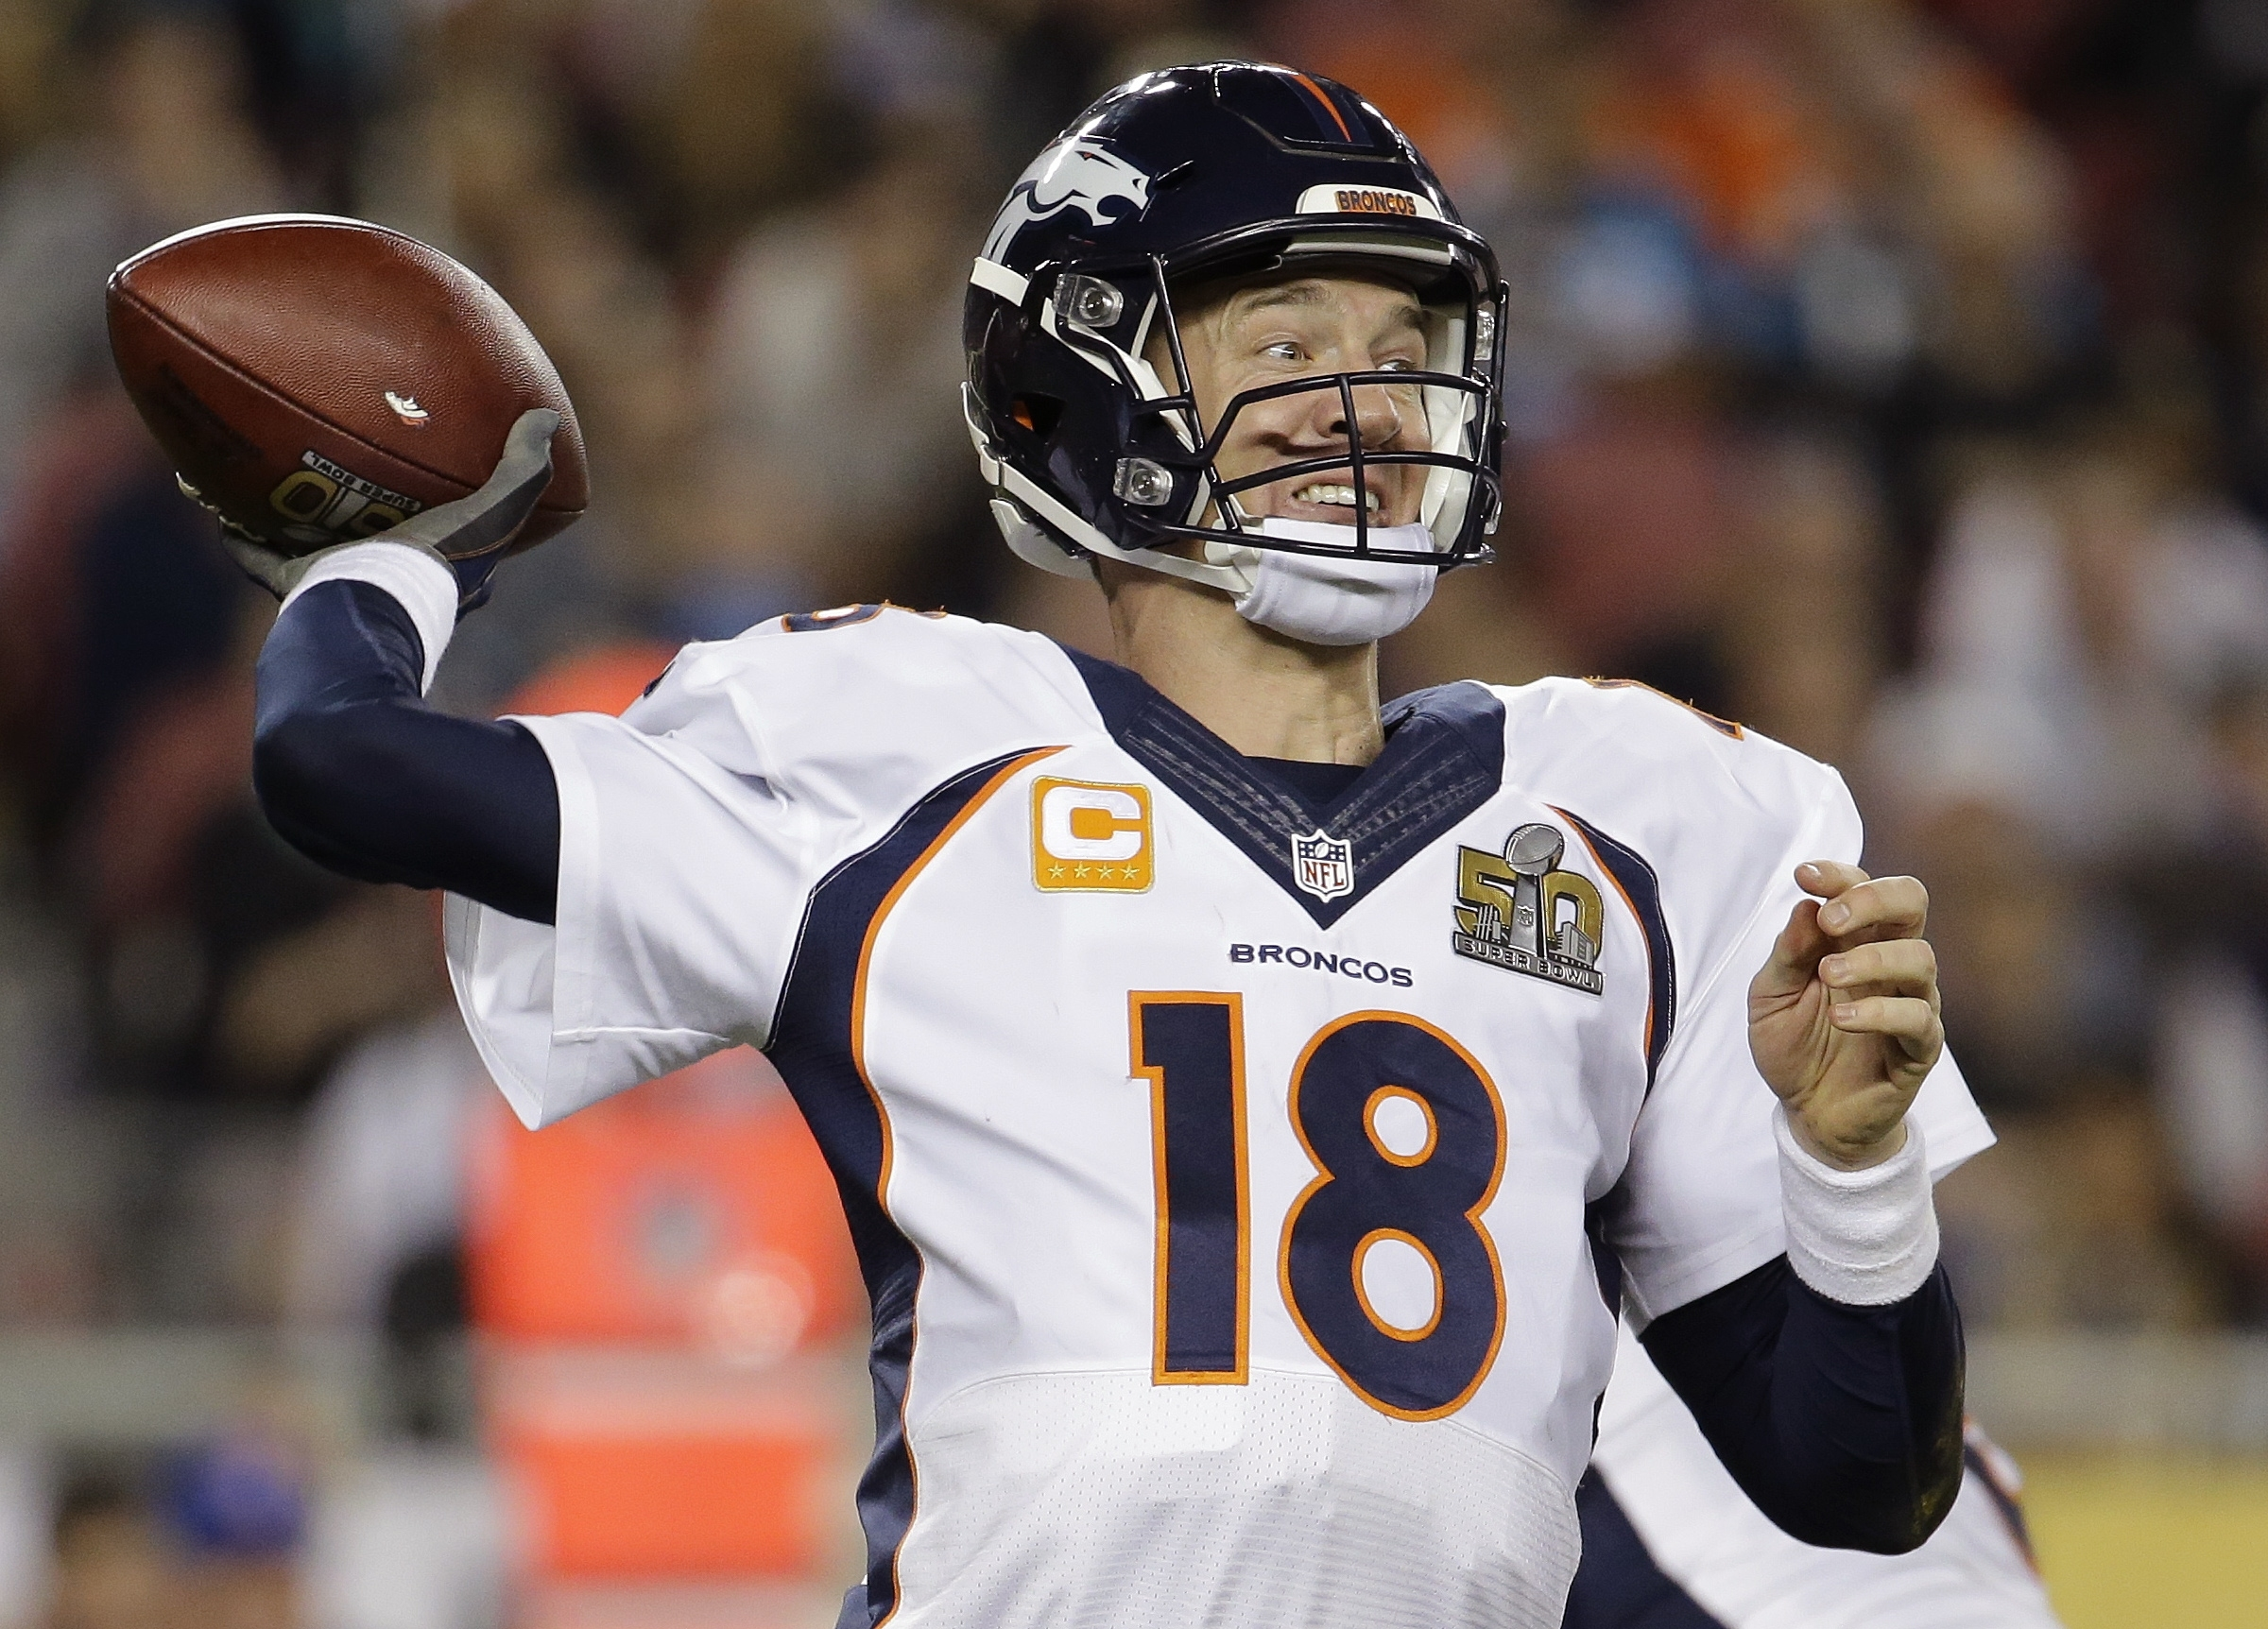 Super Bowl 50: Carolina Panthers, Denver Broncos Battle For regarding Broncos Super Bowl 50